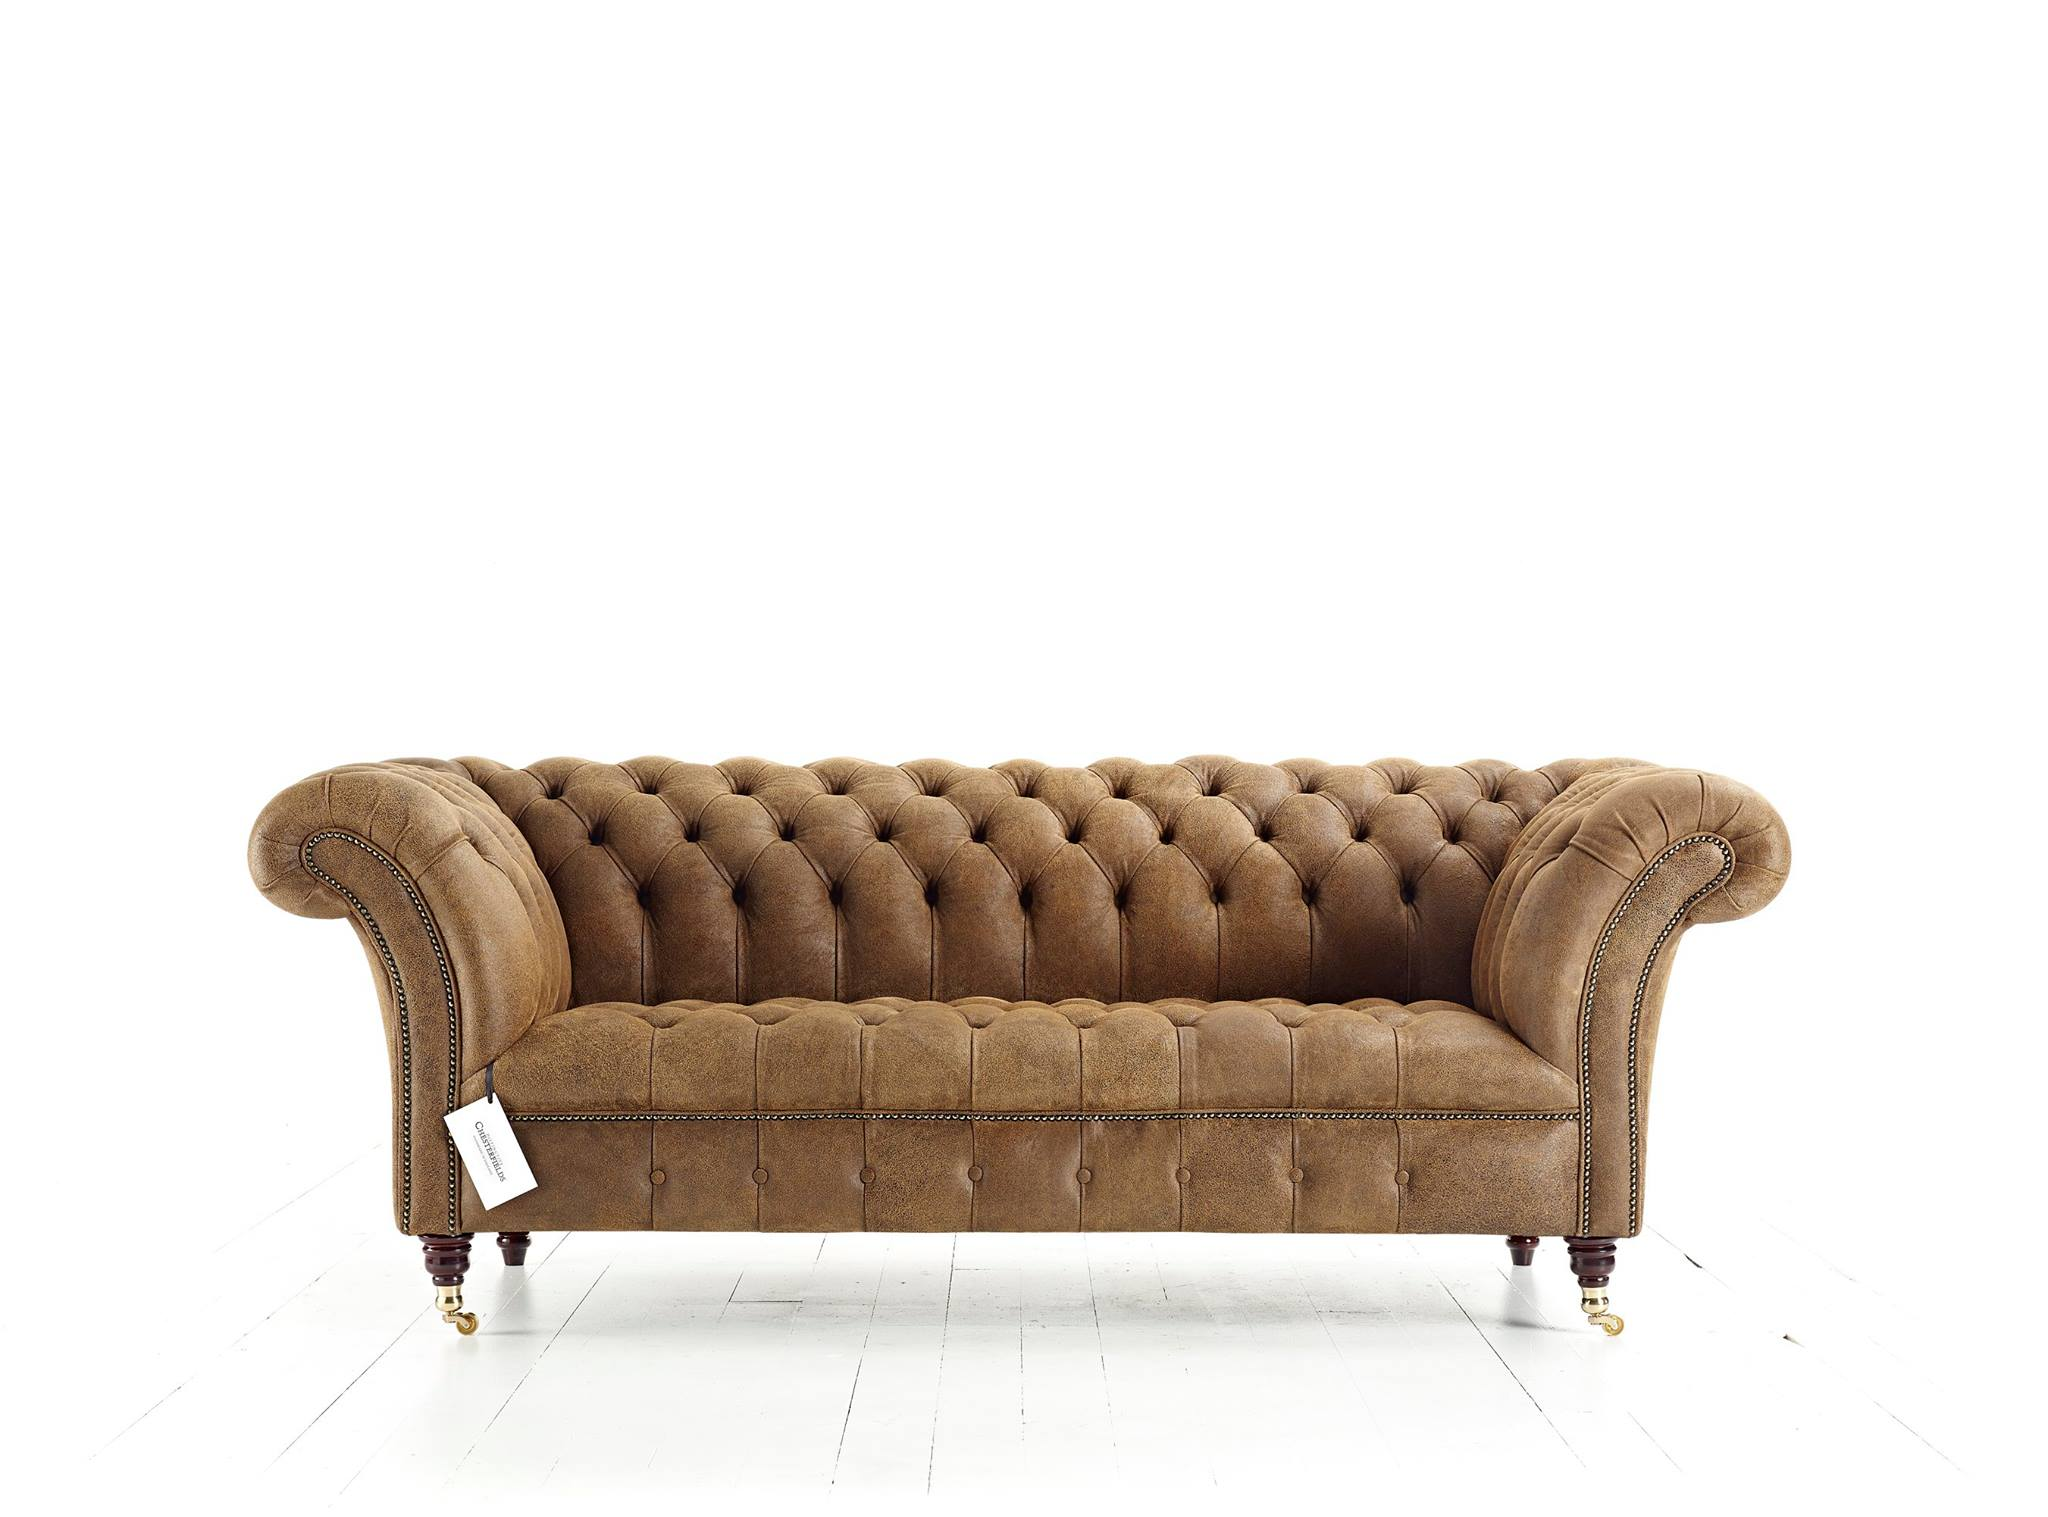 Blenheim Distressed Leather.jpg